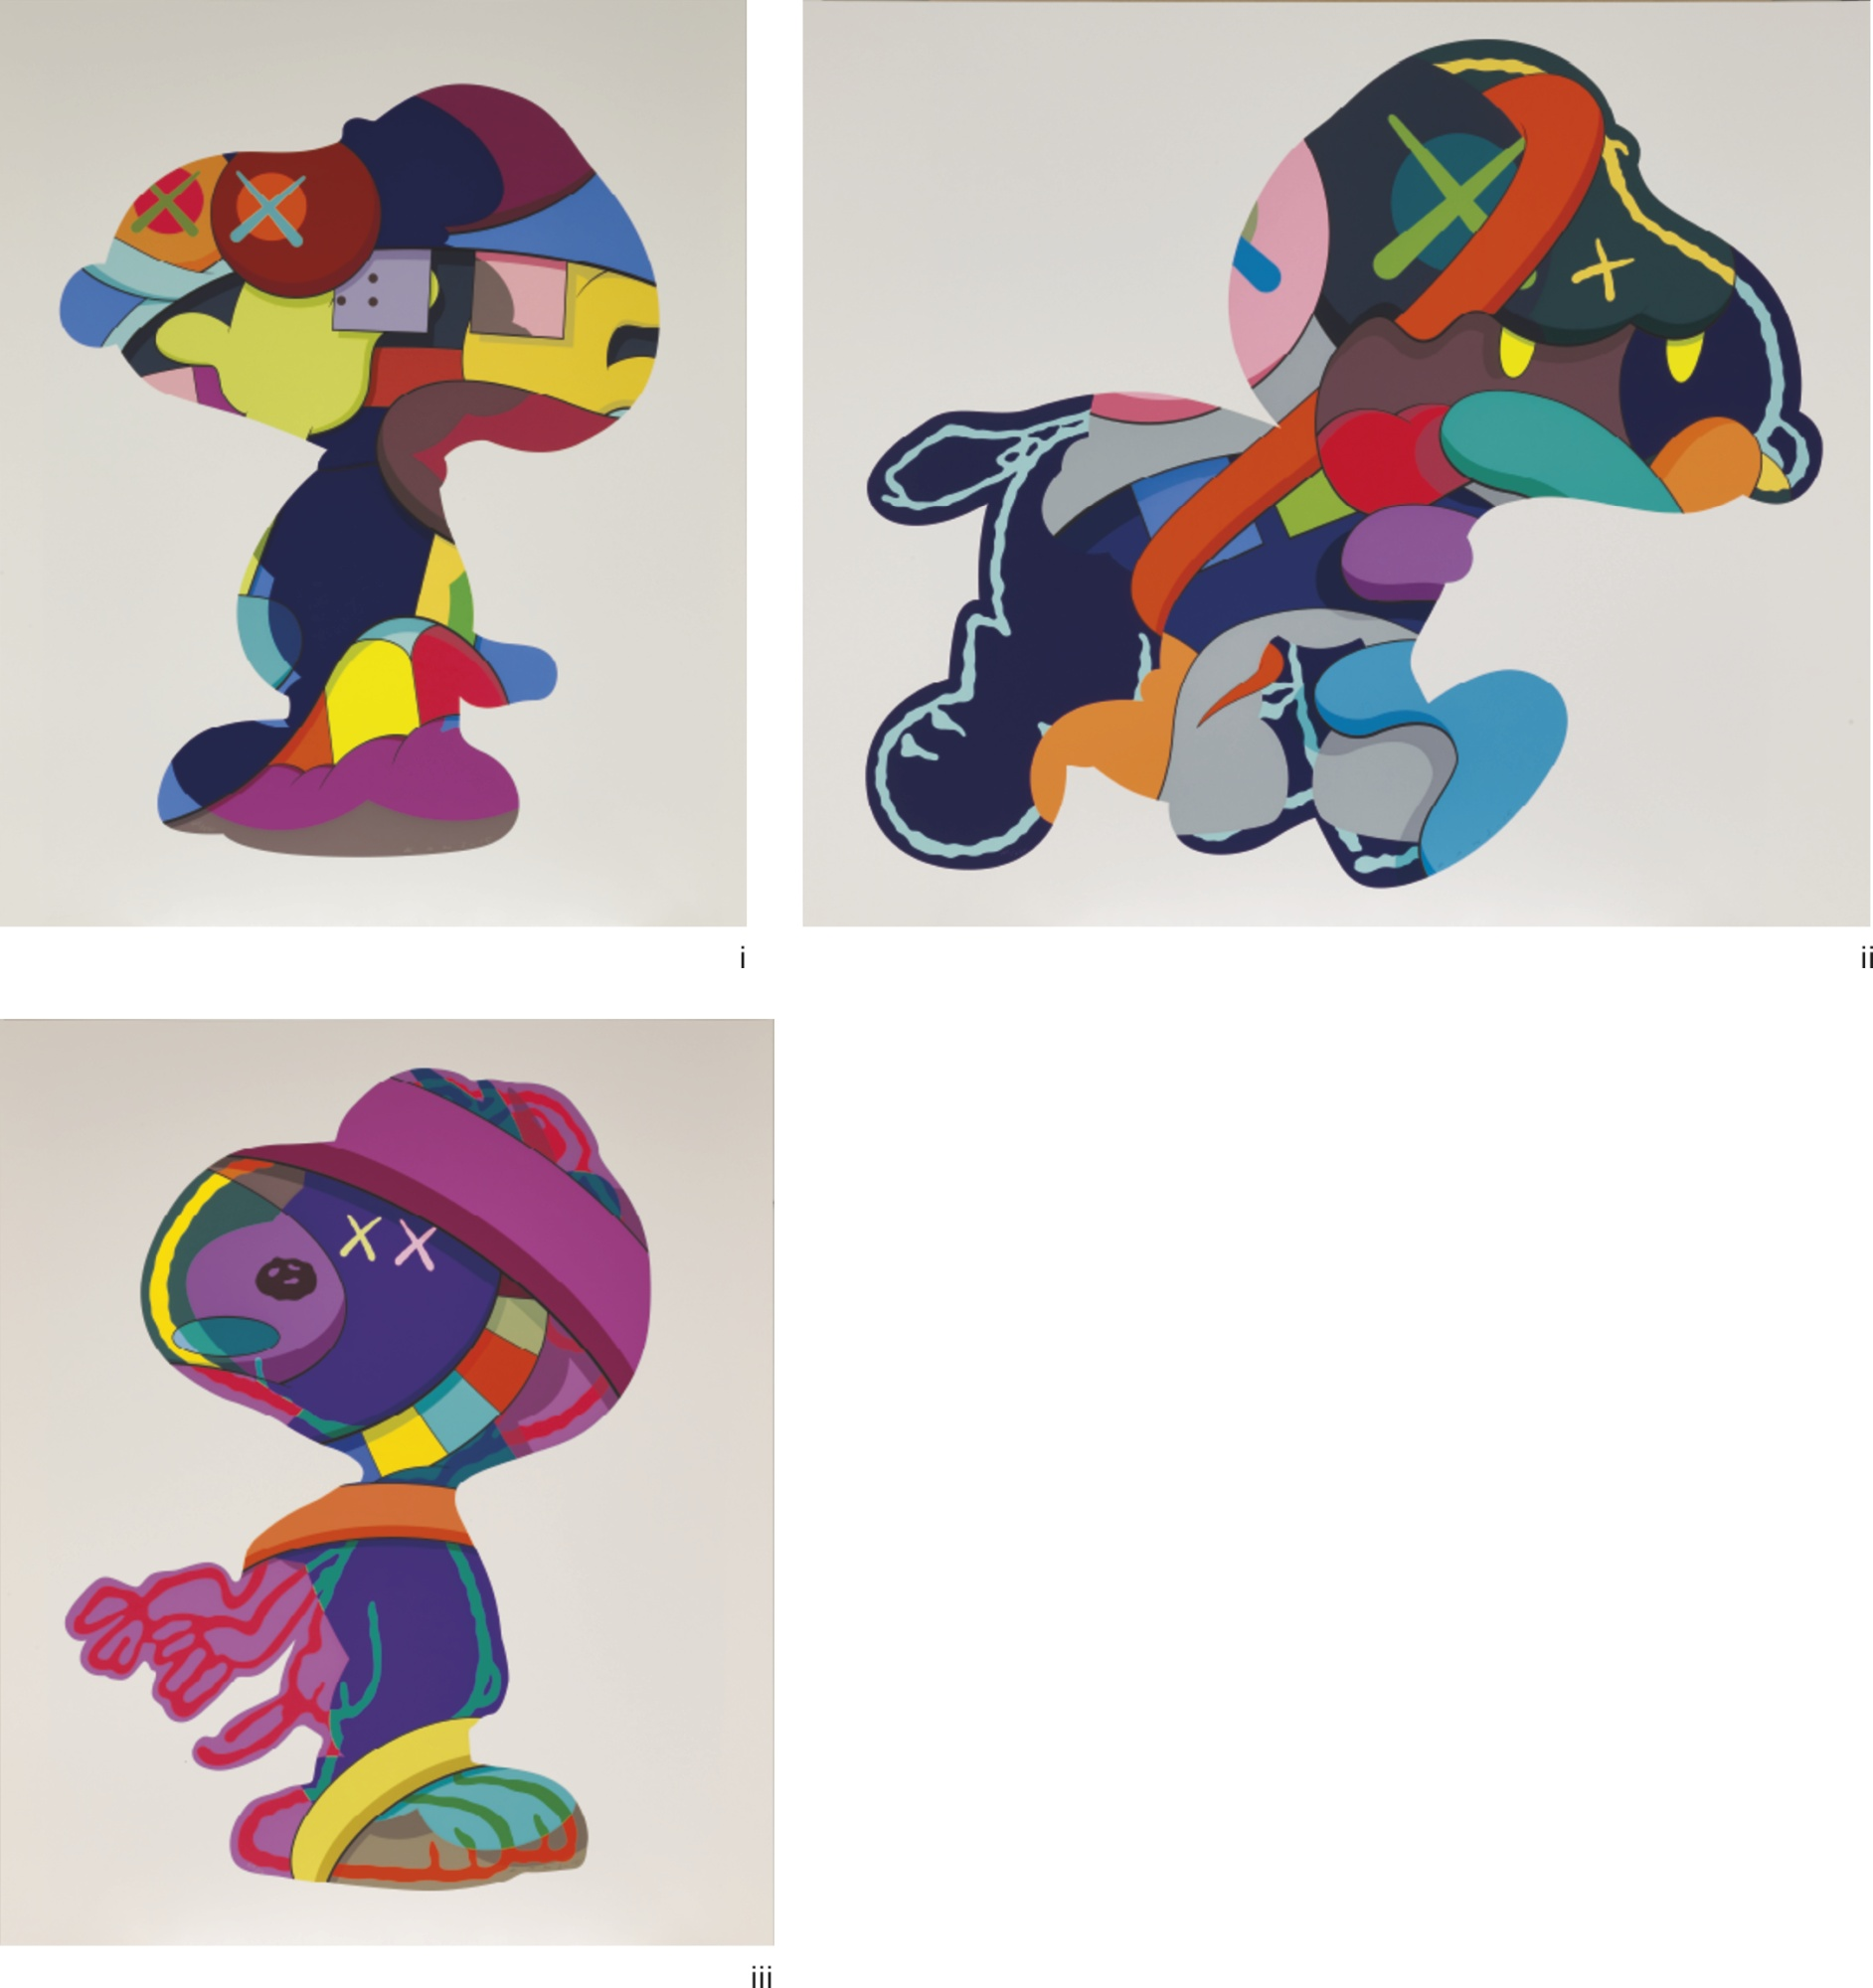 KAWS-(i) No One's Home; (ii) Stay Steady; (iii) The Things That Comfort (Three Works)-2015